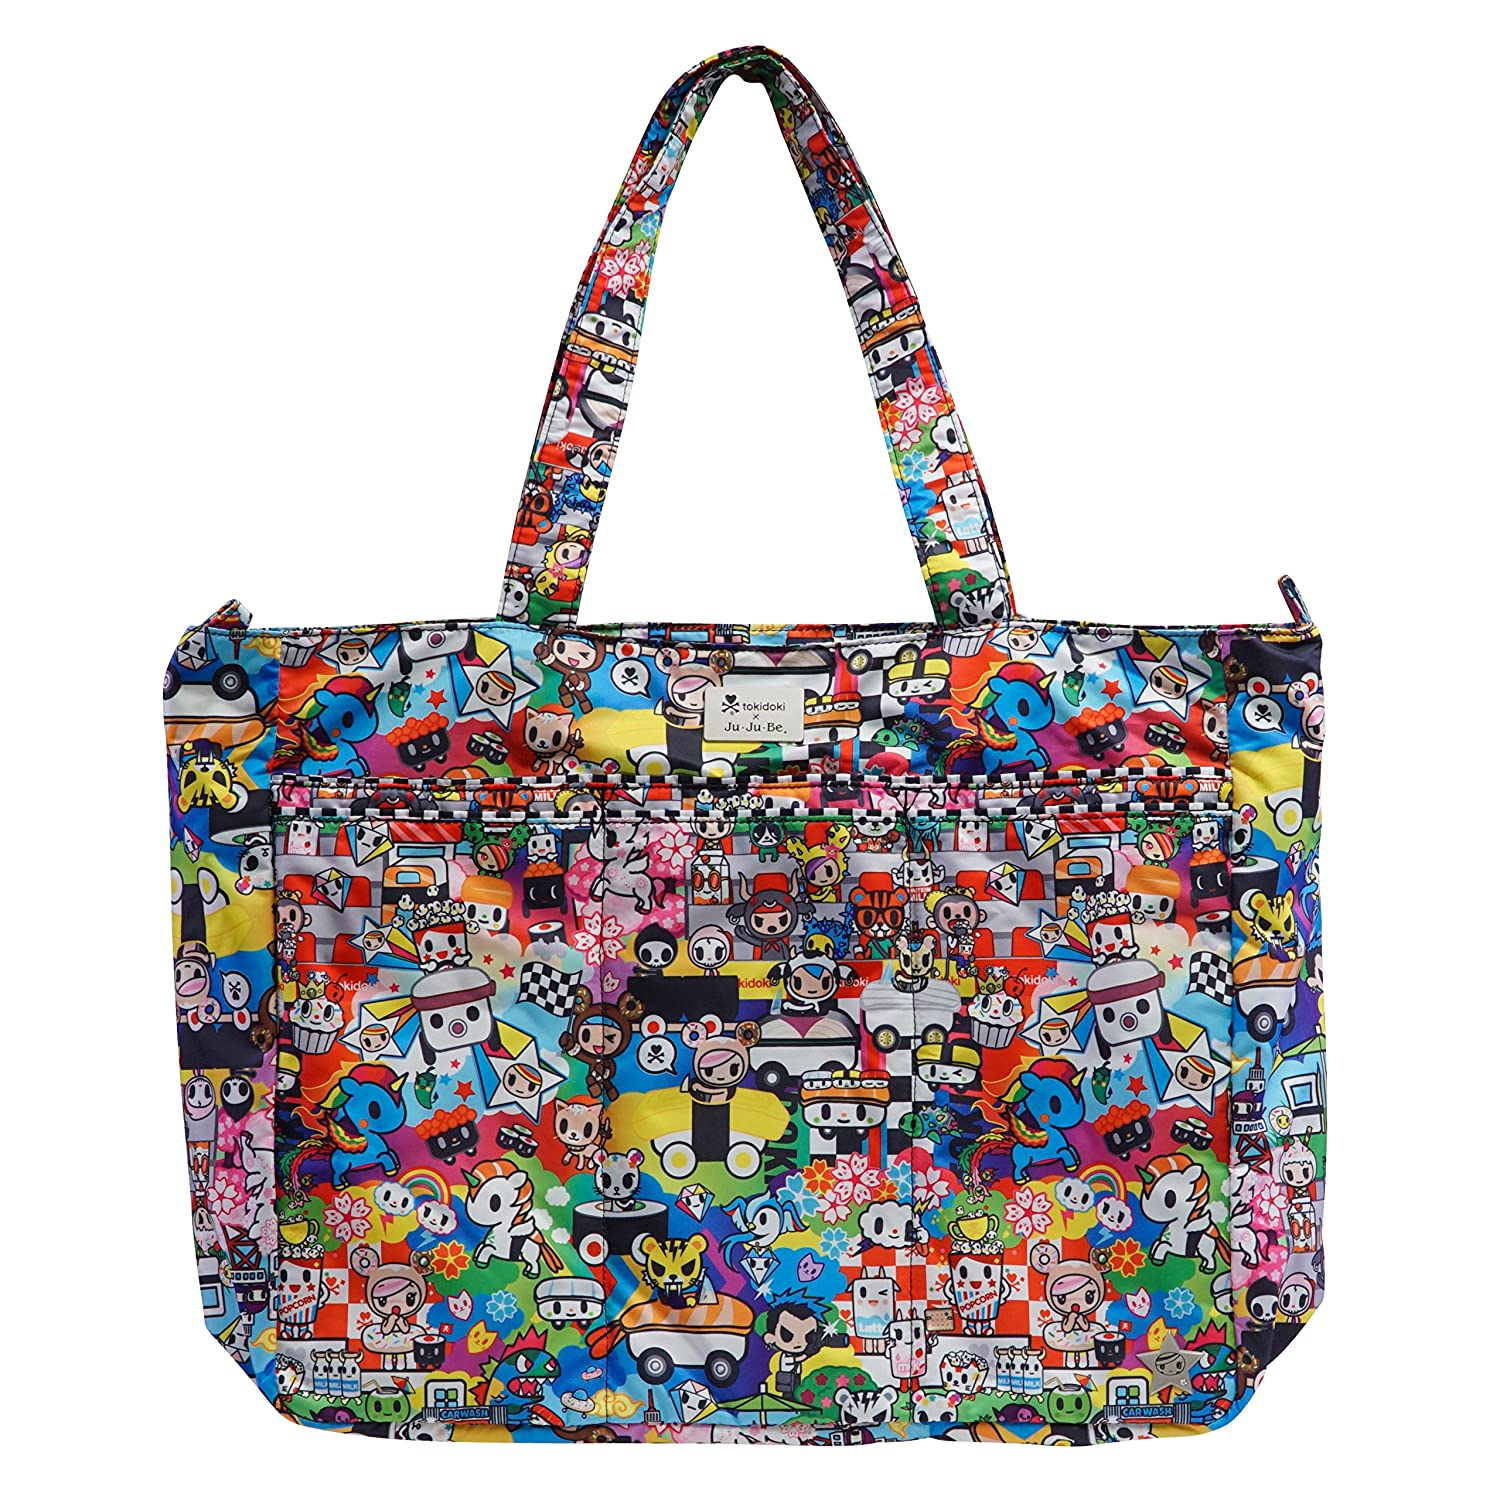 JUJUBE SUPER BE LARGE EVERYDAY LIGHTWEIGHT ZIPPERED TOTE BAG TOKIDOKI COLLECTION - SUSHI CARS